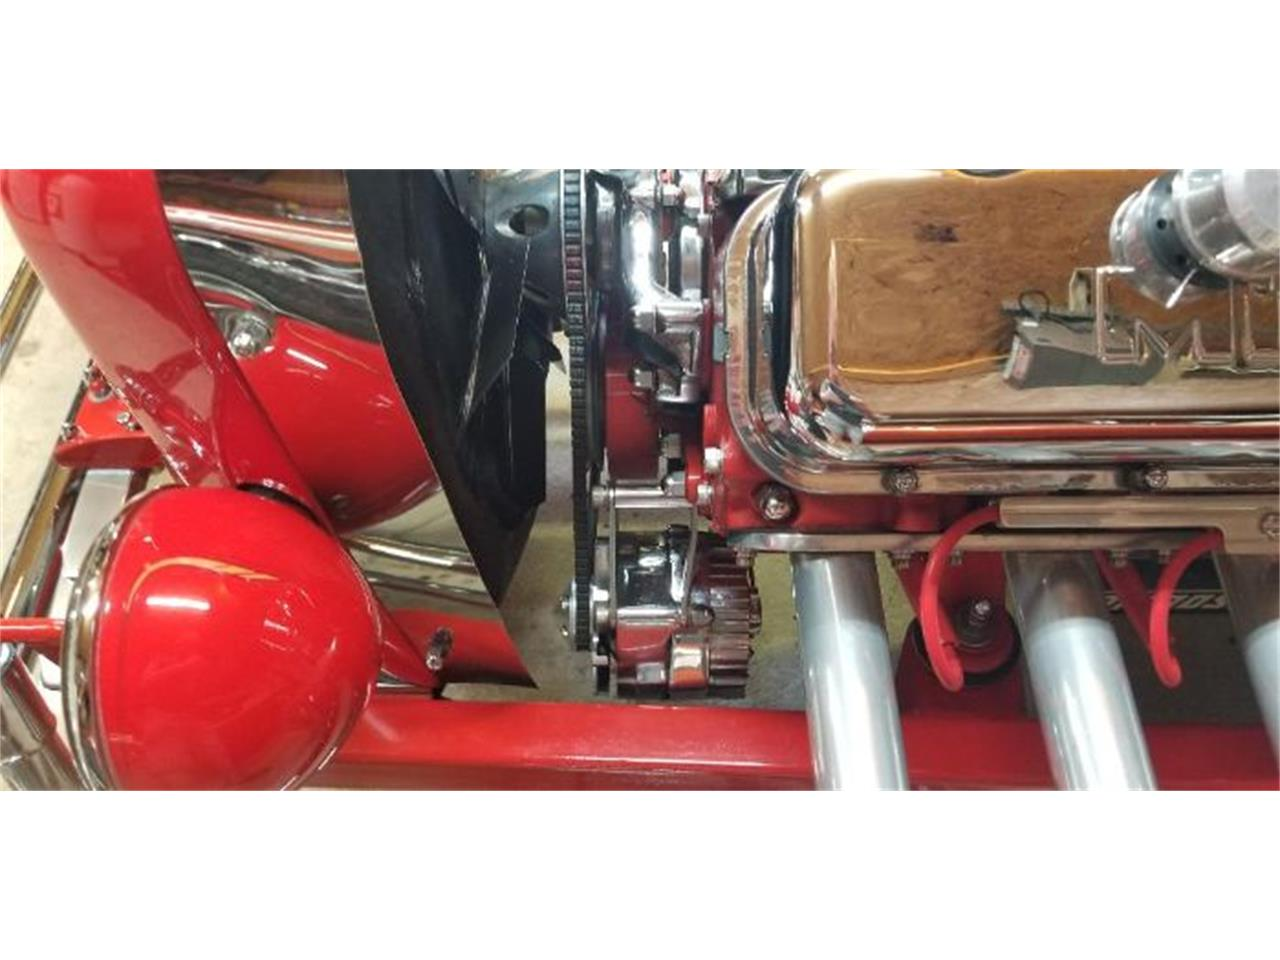 Large Picture of 1927 Ford Roadster - $27,900.00 Offered by Classic Car Deals - ODNC